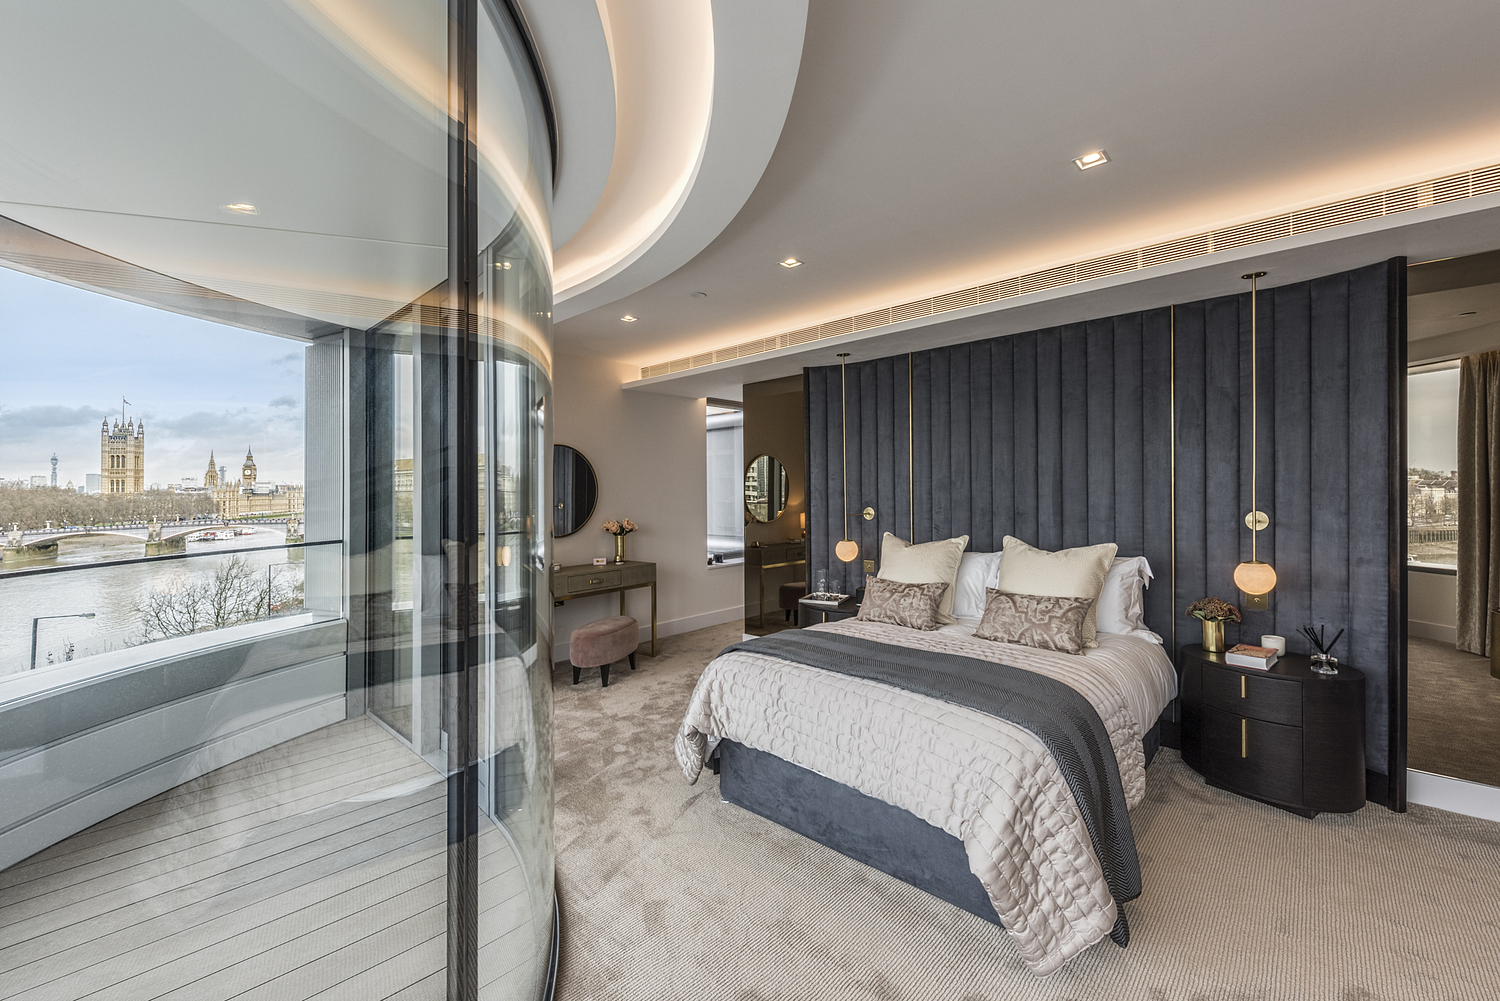 Bedroom detail with view of Parliament, London apartment